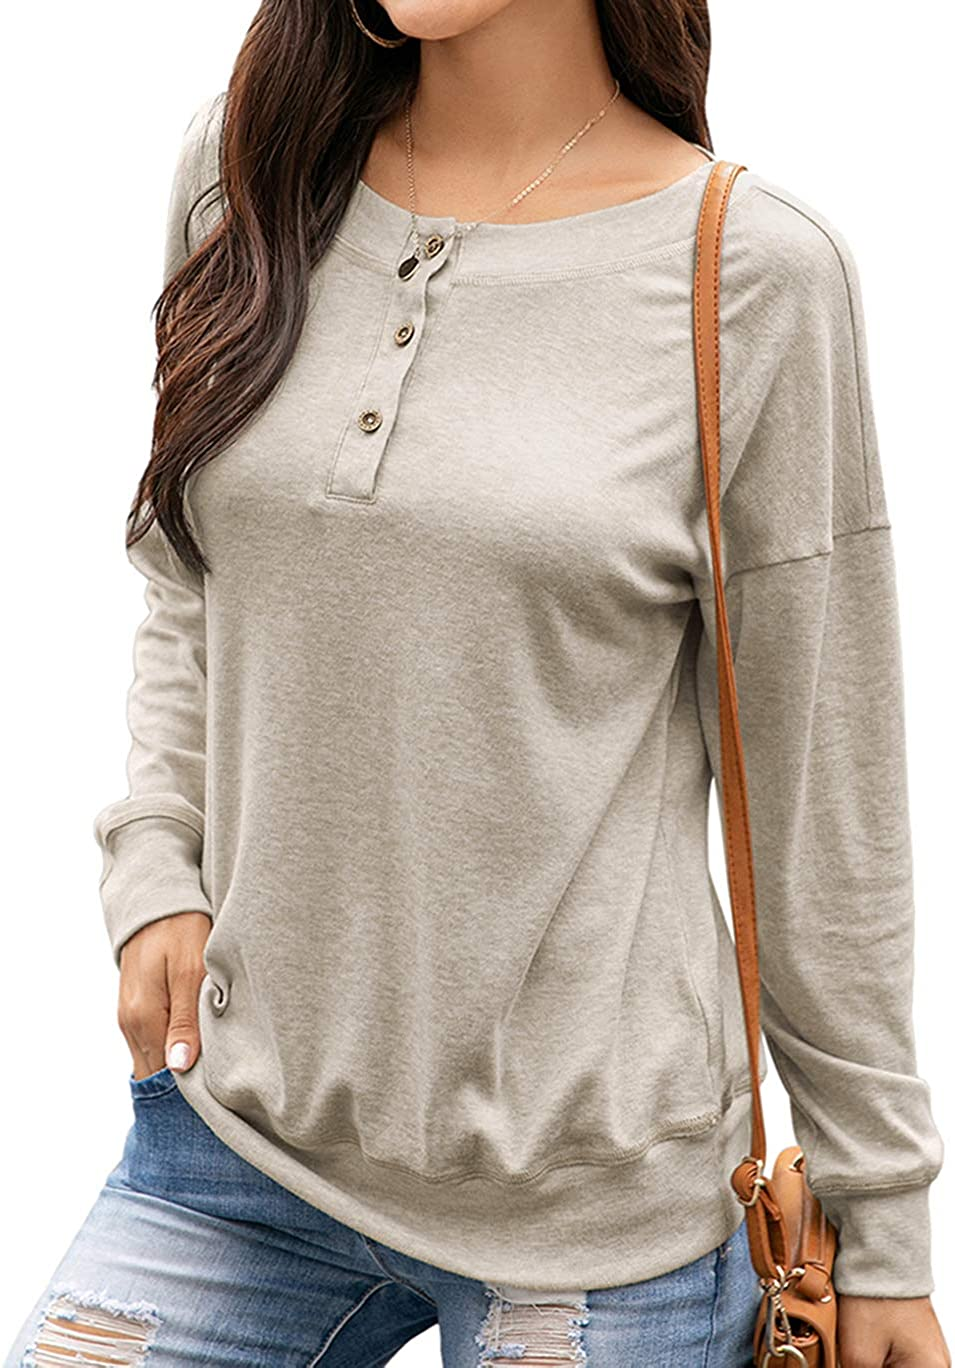 HAVANSIDY Womens T-Shirts Casual Crewneck Knited Long Sleeve Tops Solid Color Beige, XL